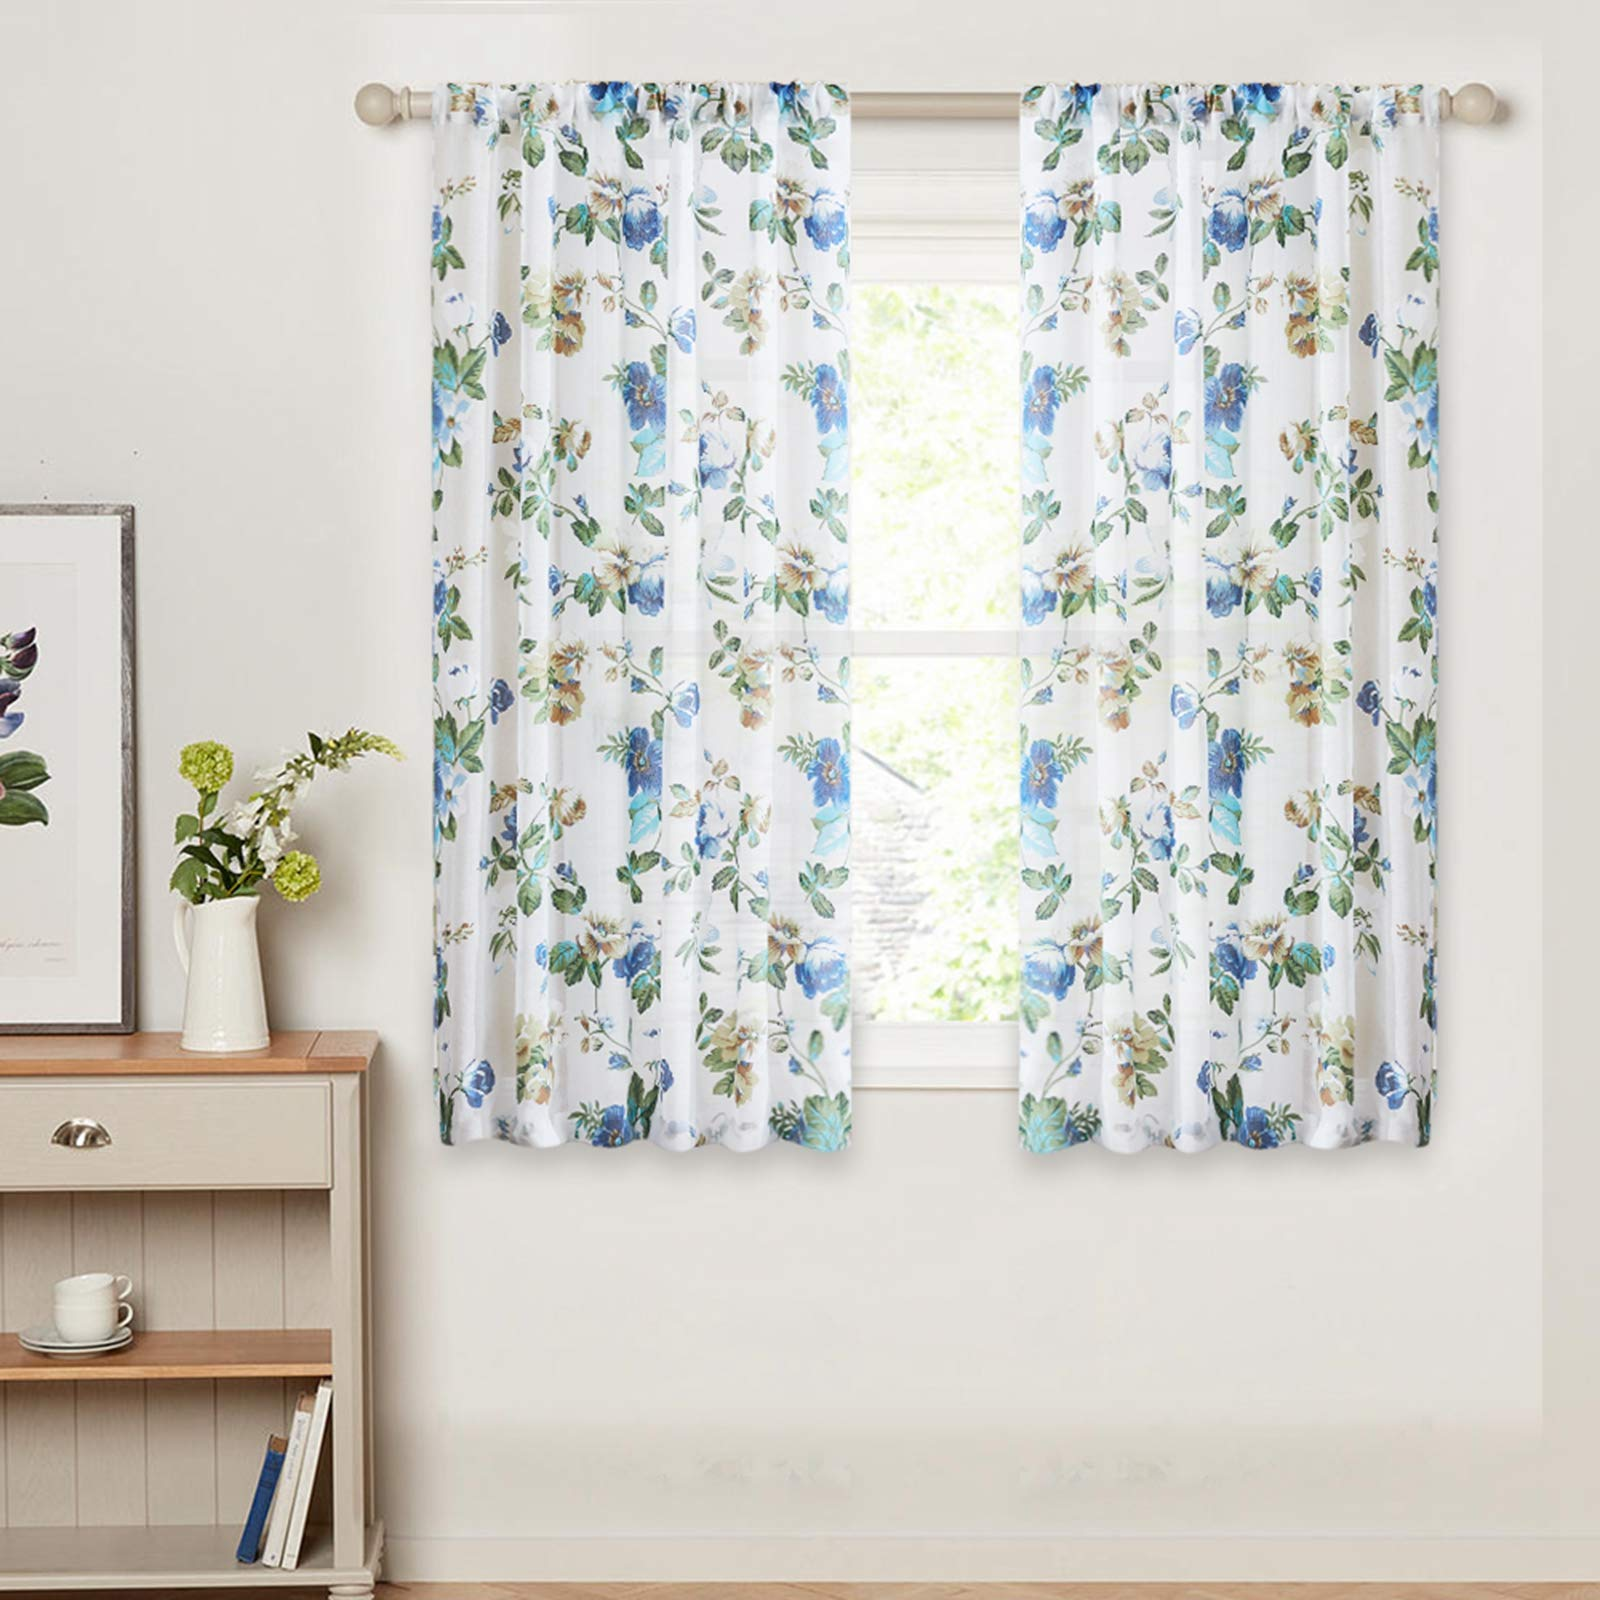 Amazon Com Mrtrees Printed Sheer Curtains 54 Inches Long Living Room Floral Leaf Print Window Curtain Sheers Bedroom Window Treatment Set Kitchen Vintage Rustic 2 Panels Rod Pocket Voile Drapes Blue Flowers